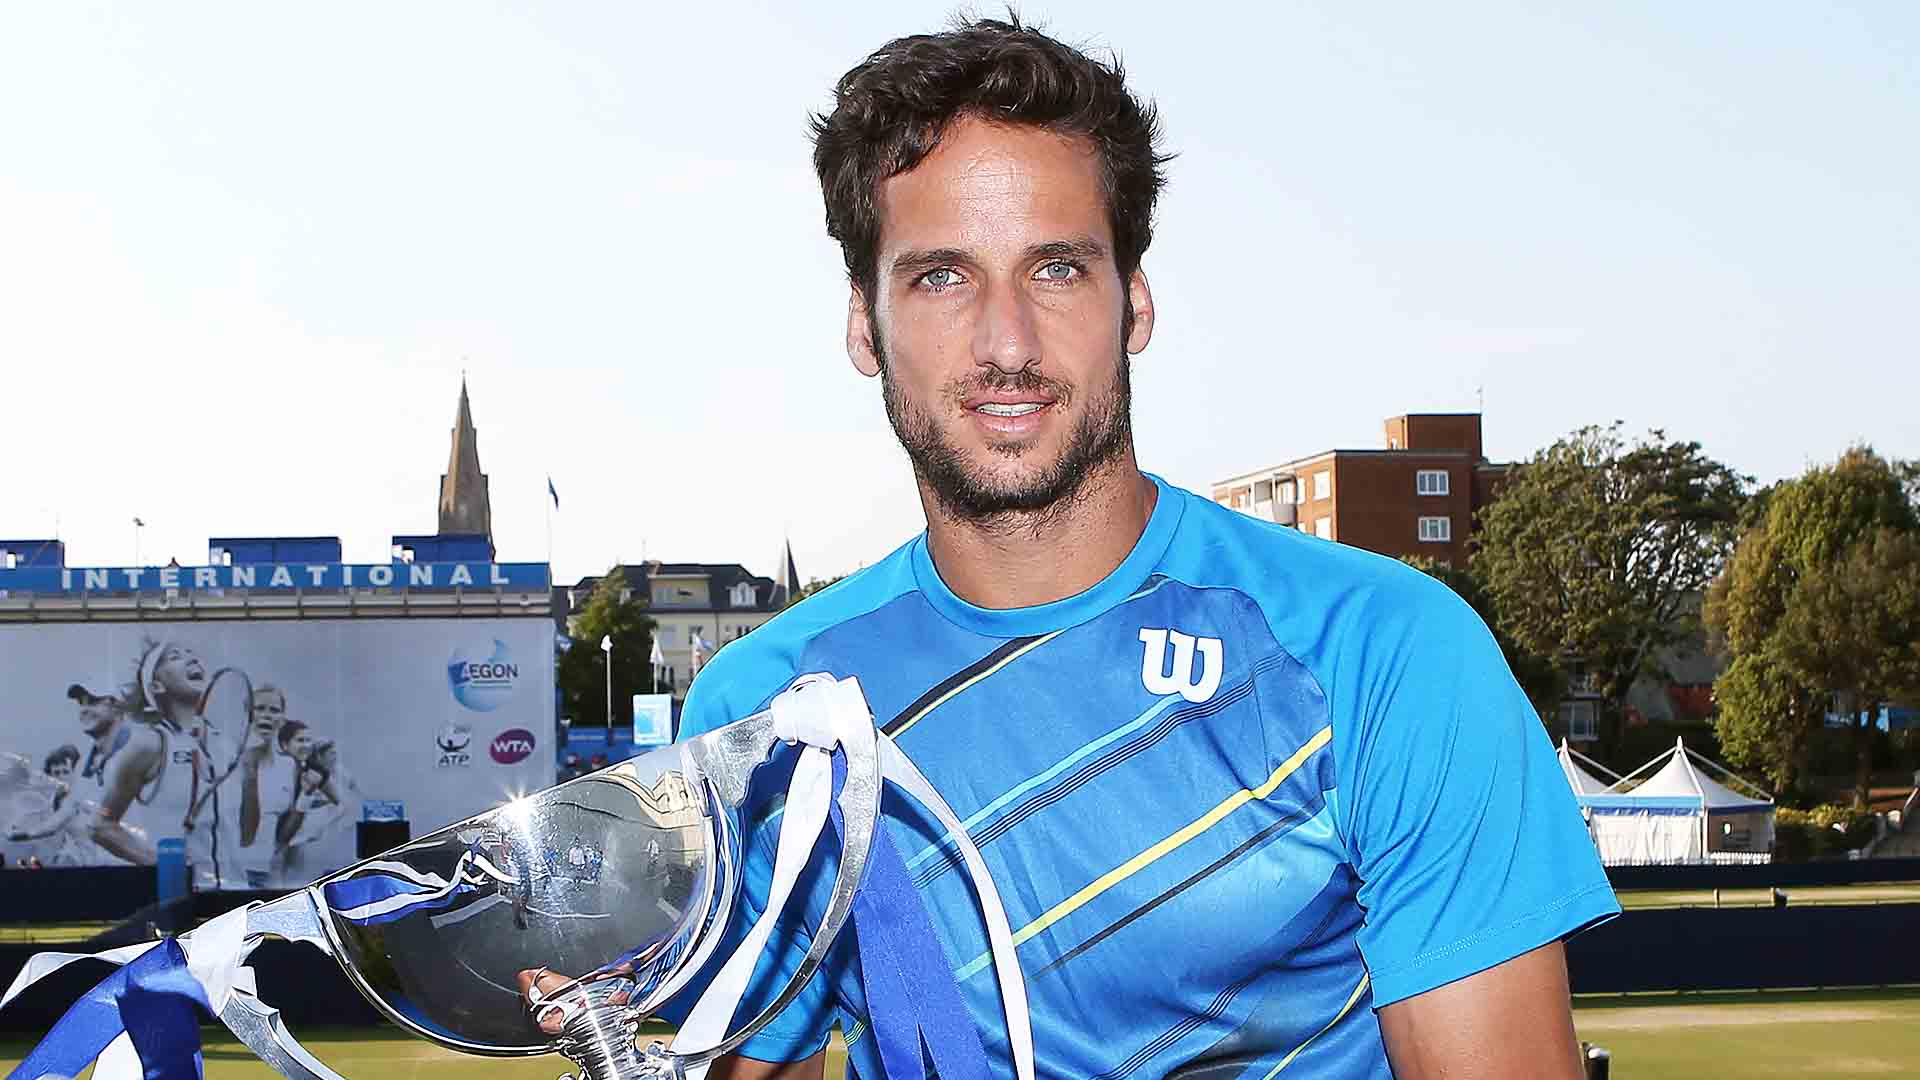 <a href='/en/players/feliciano-lopez/l397/overview'>Feliciano Lopez</a> beats <a href='/en/players/richard-gasquet/g628/overview'>Richard Gasquet</a> to win his second straight title in Eastbourne.